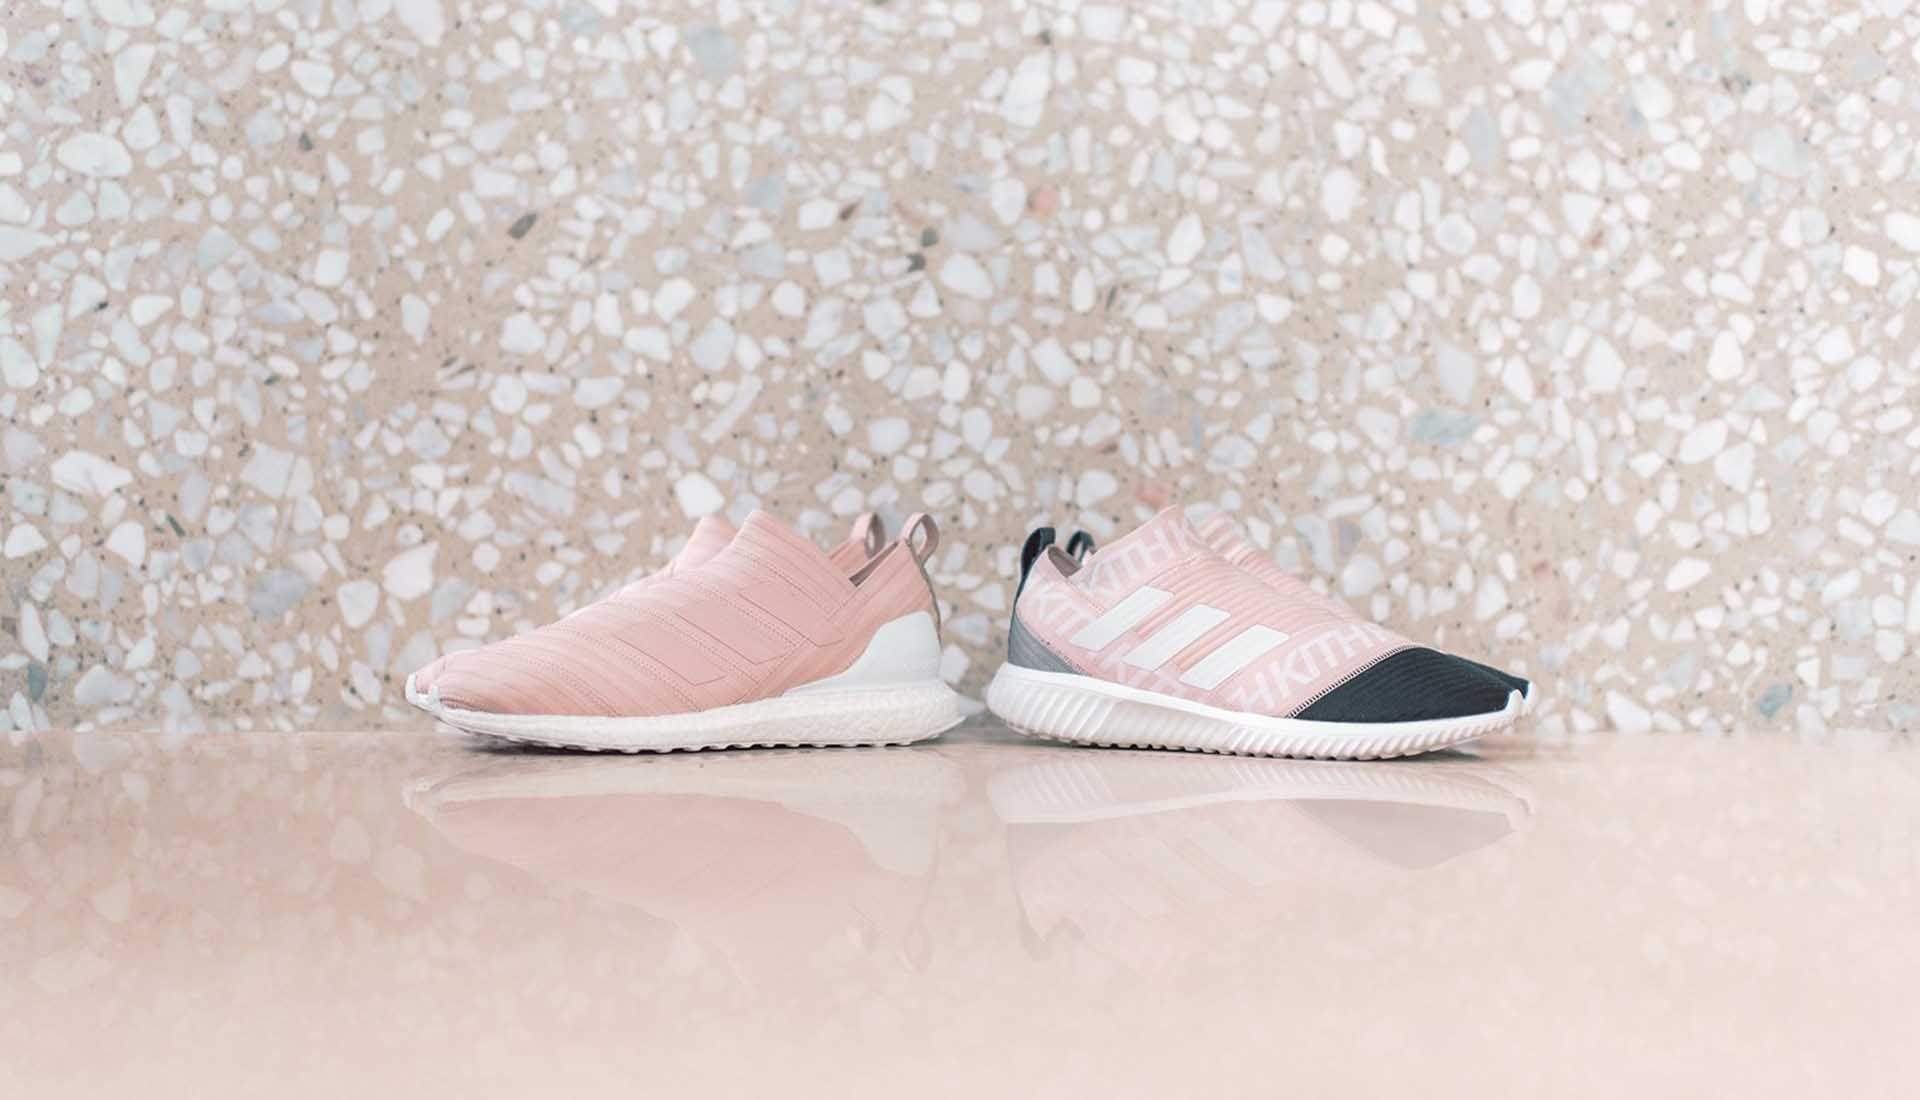 6fb65b78eddd4 KITH x adidas Football Miami Flamingos Lookbook - SoccerBible